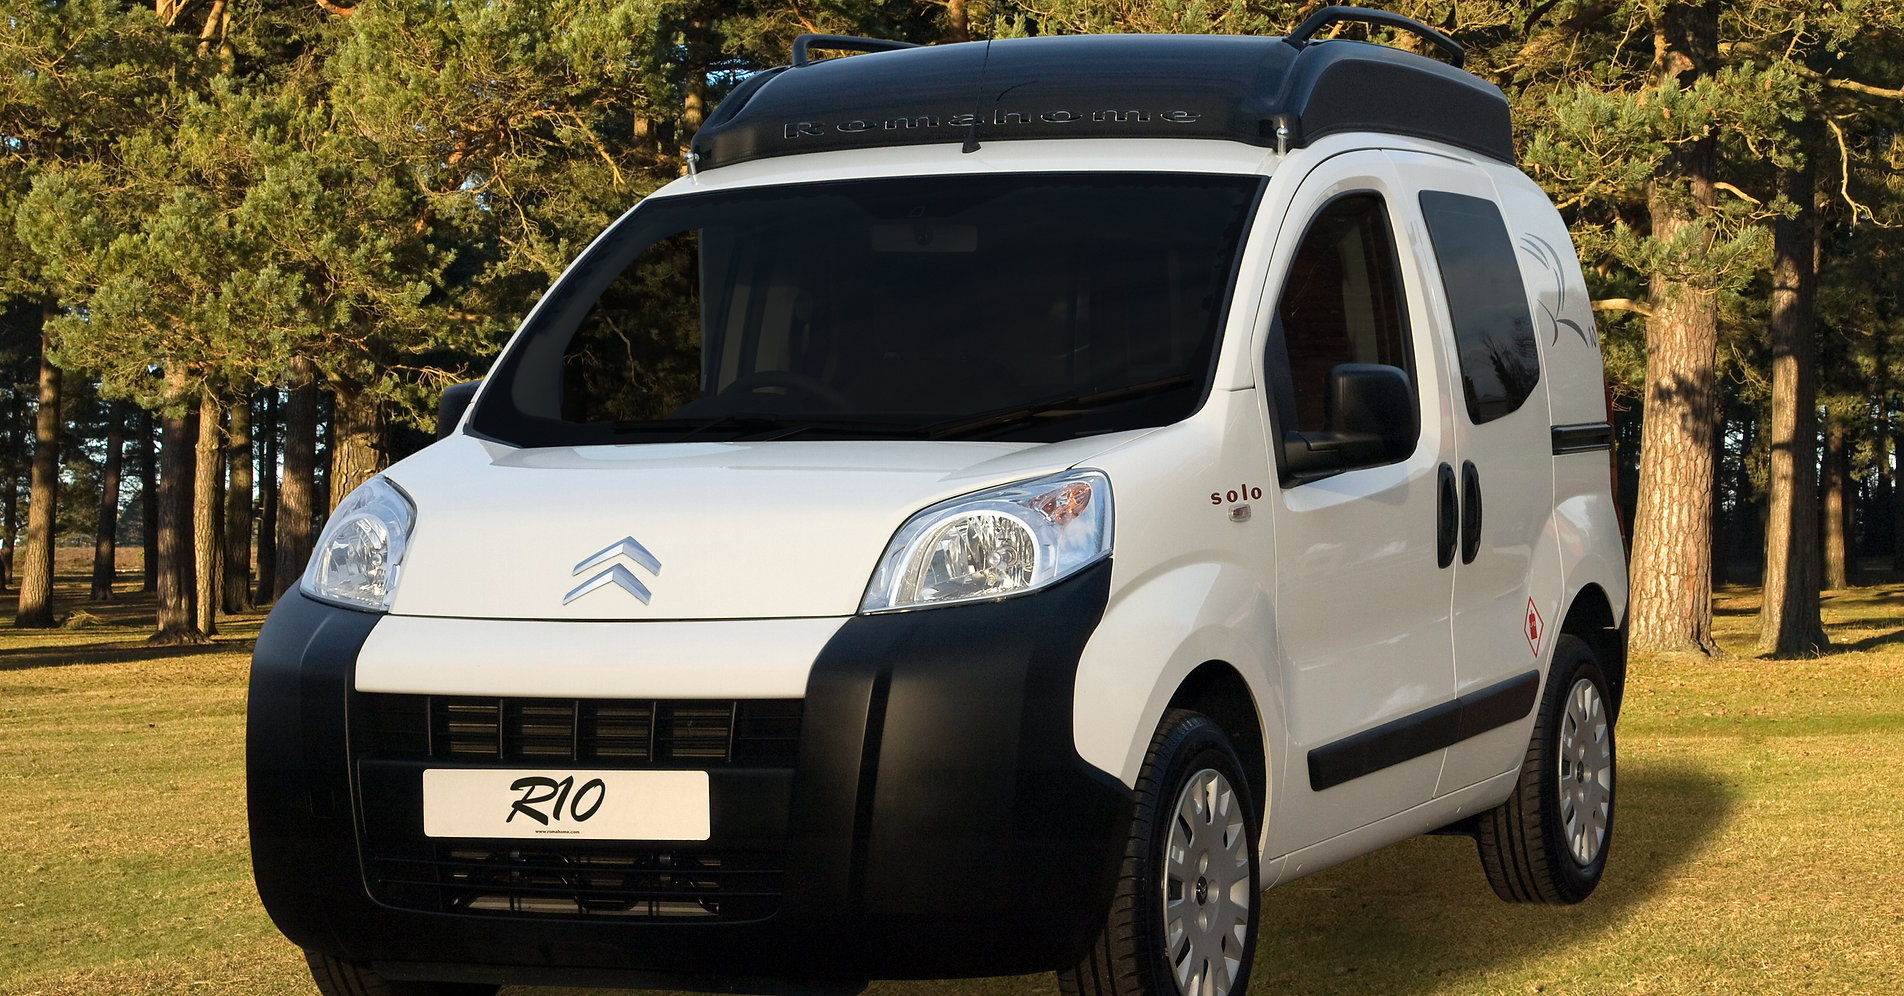 Romahome R10 - small camper vans -